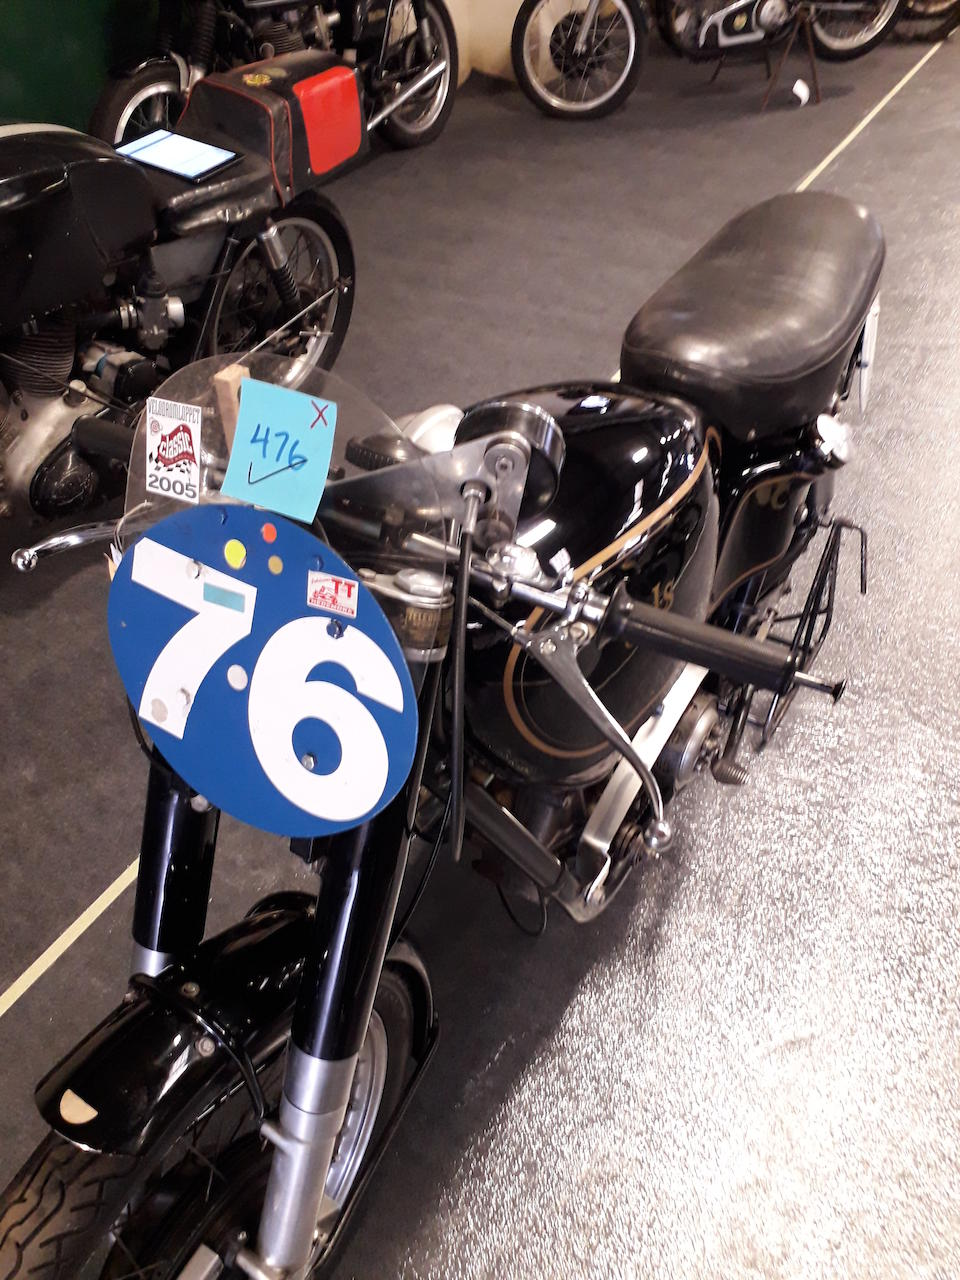 1950 AJS 350cc 7R Racing Motorcycle  Frame no. 1467  Engine no. 50/7R 867